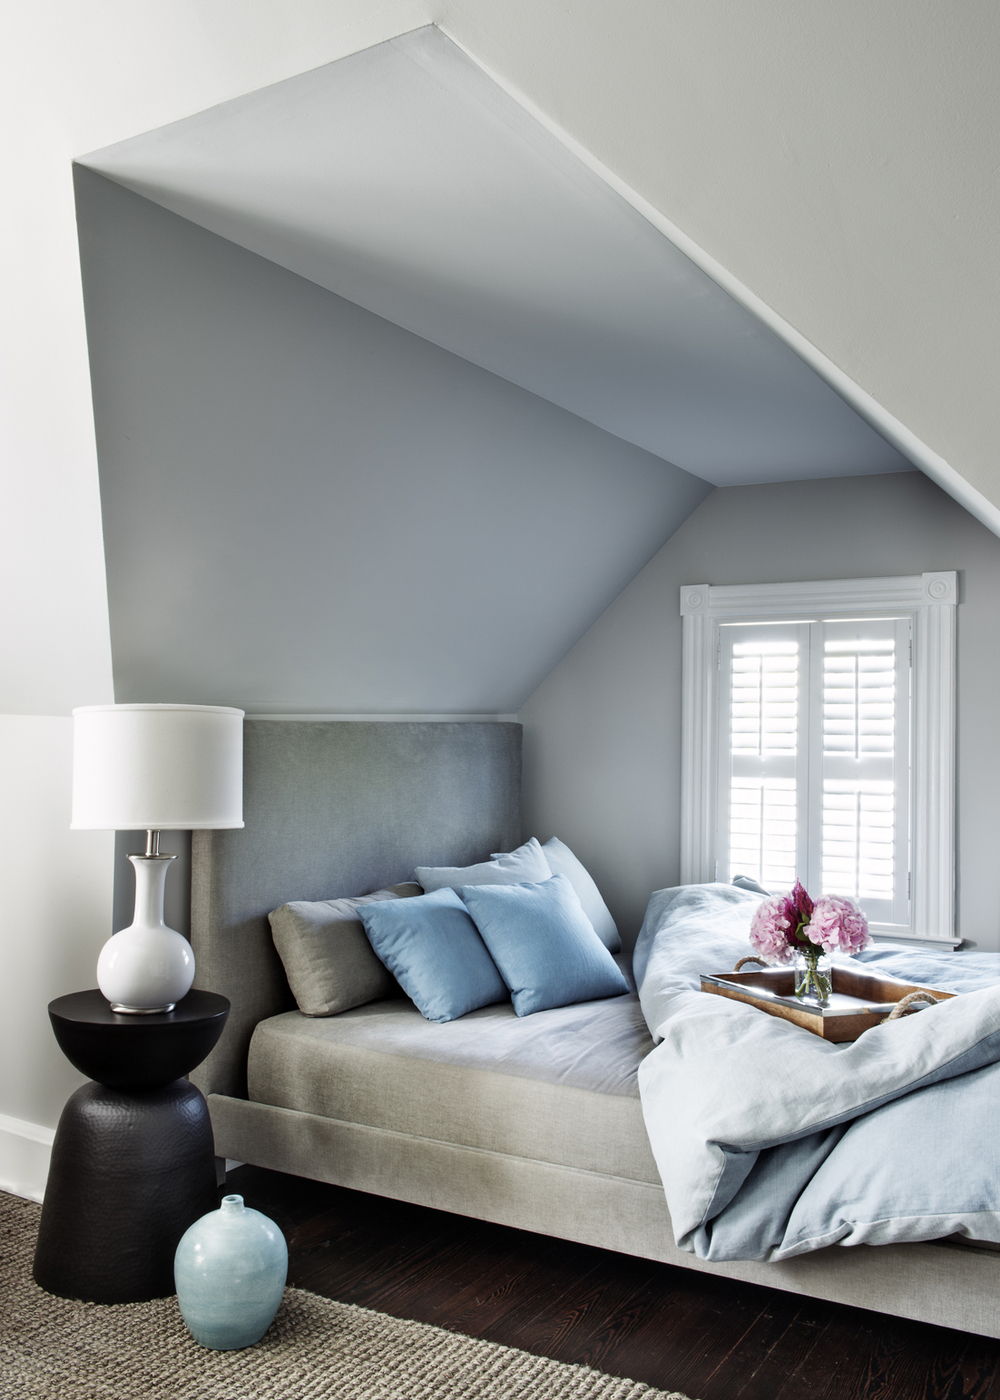 Victorian Rumson Beach Home - GUEST ROOM